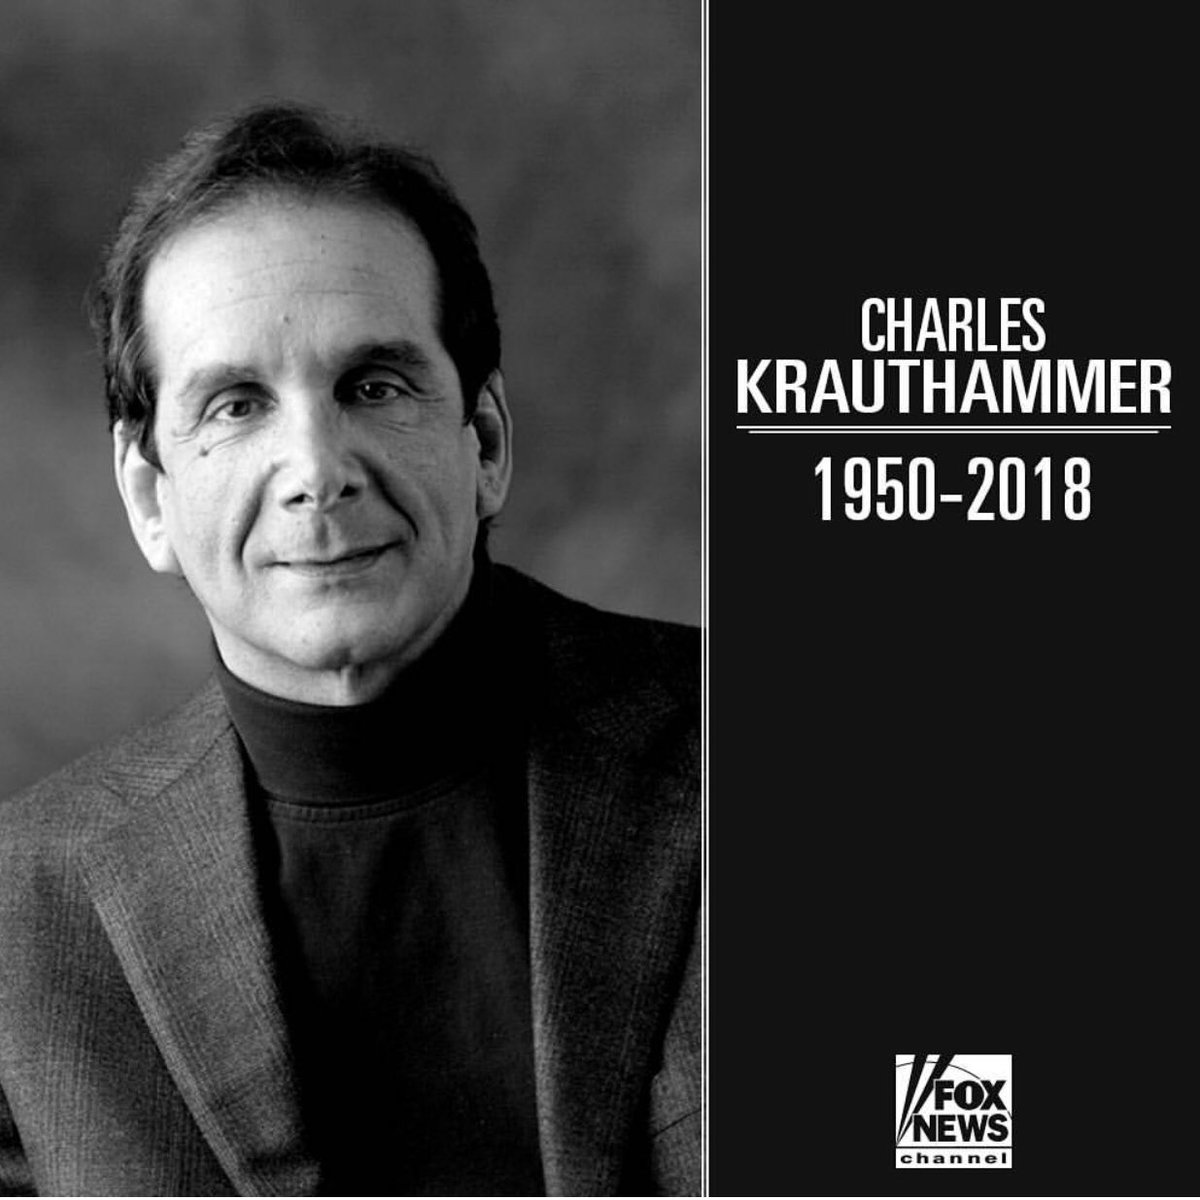 We all have heavy hearts tonight, as we morn for the Krauthammer Family. You all are in my thoughts and prayers. @foxandfriends @FoxNews